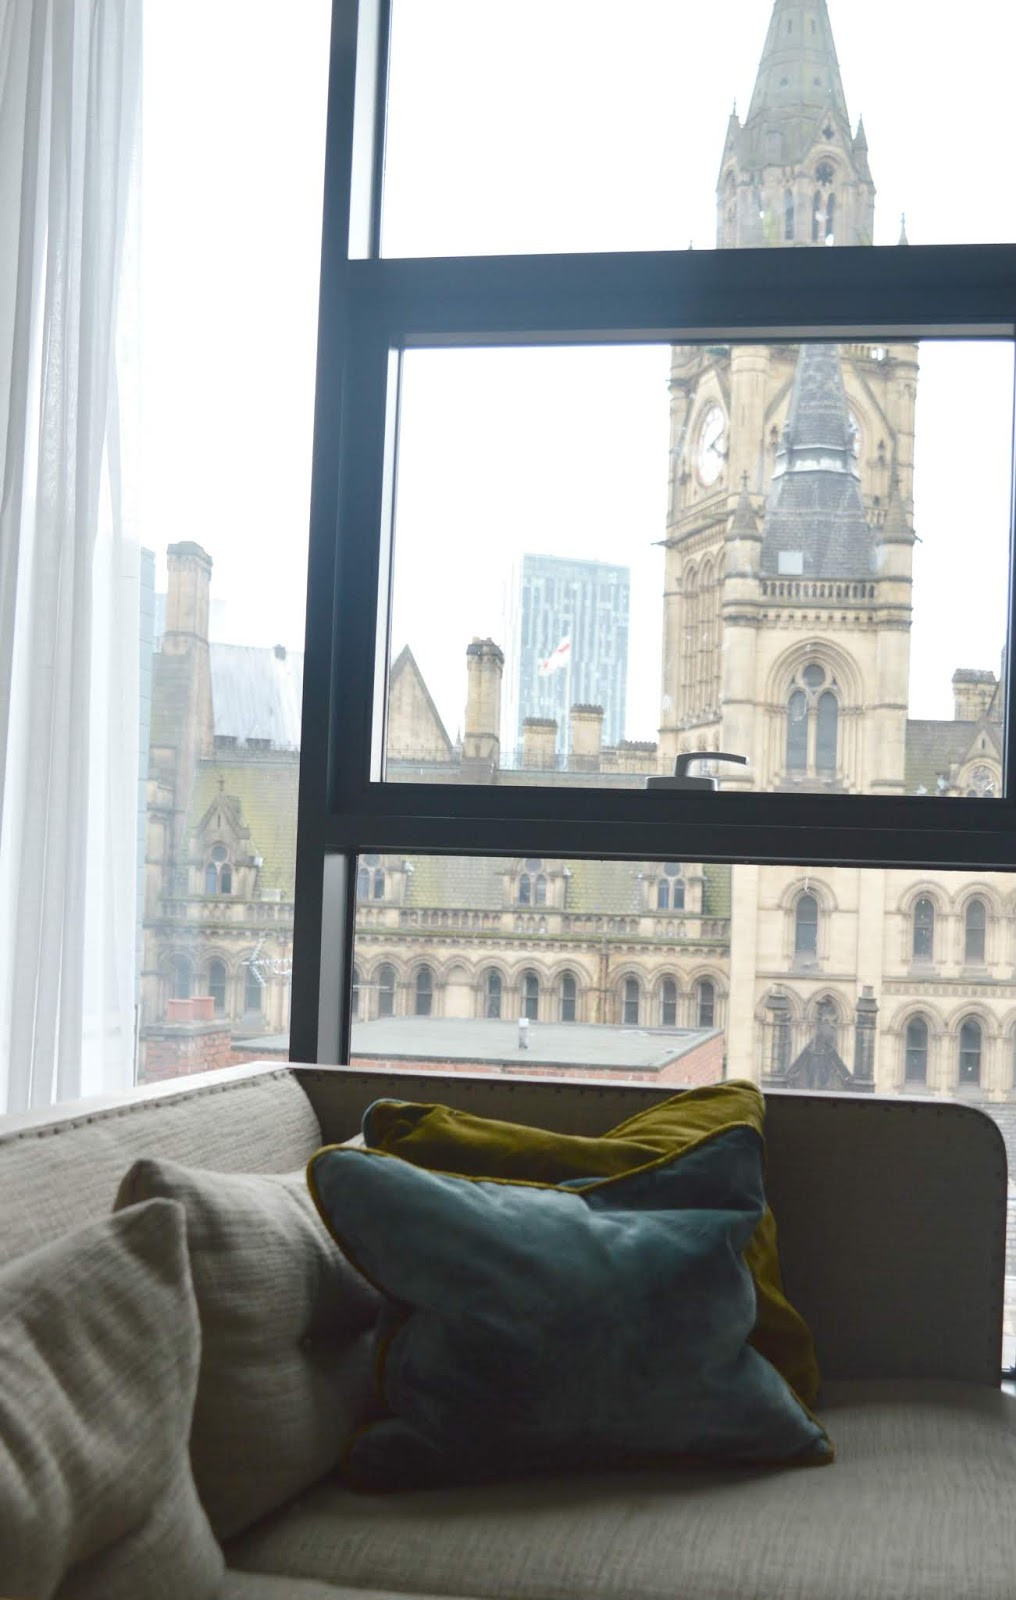 Luxury Suite at King Street Townhouse, Manchester